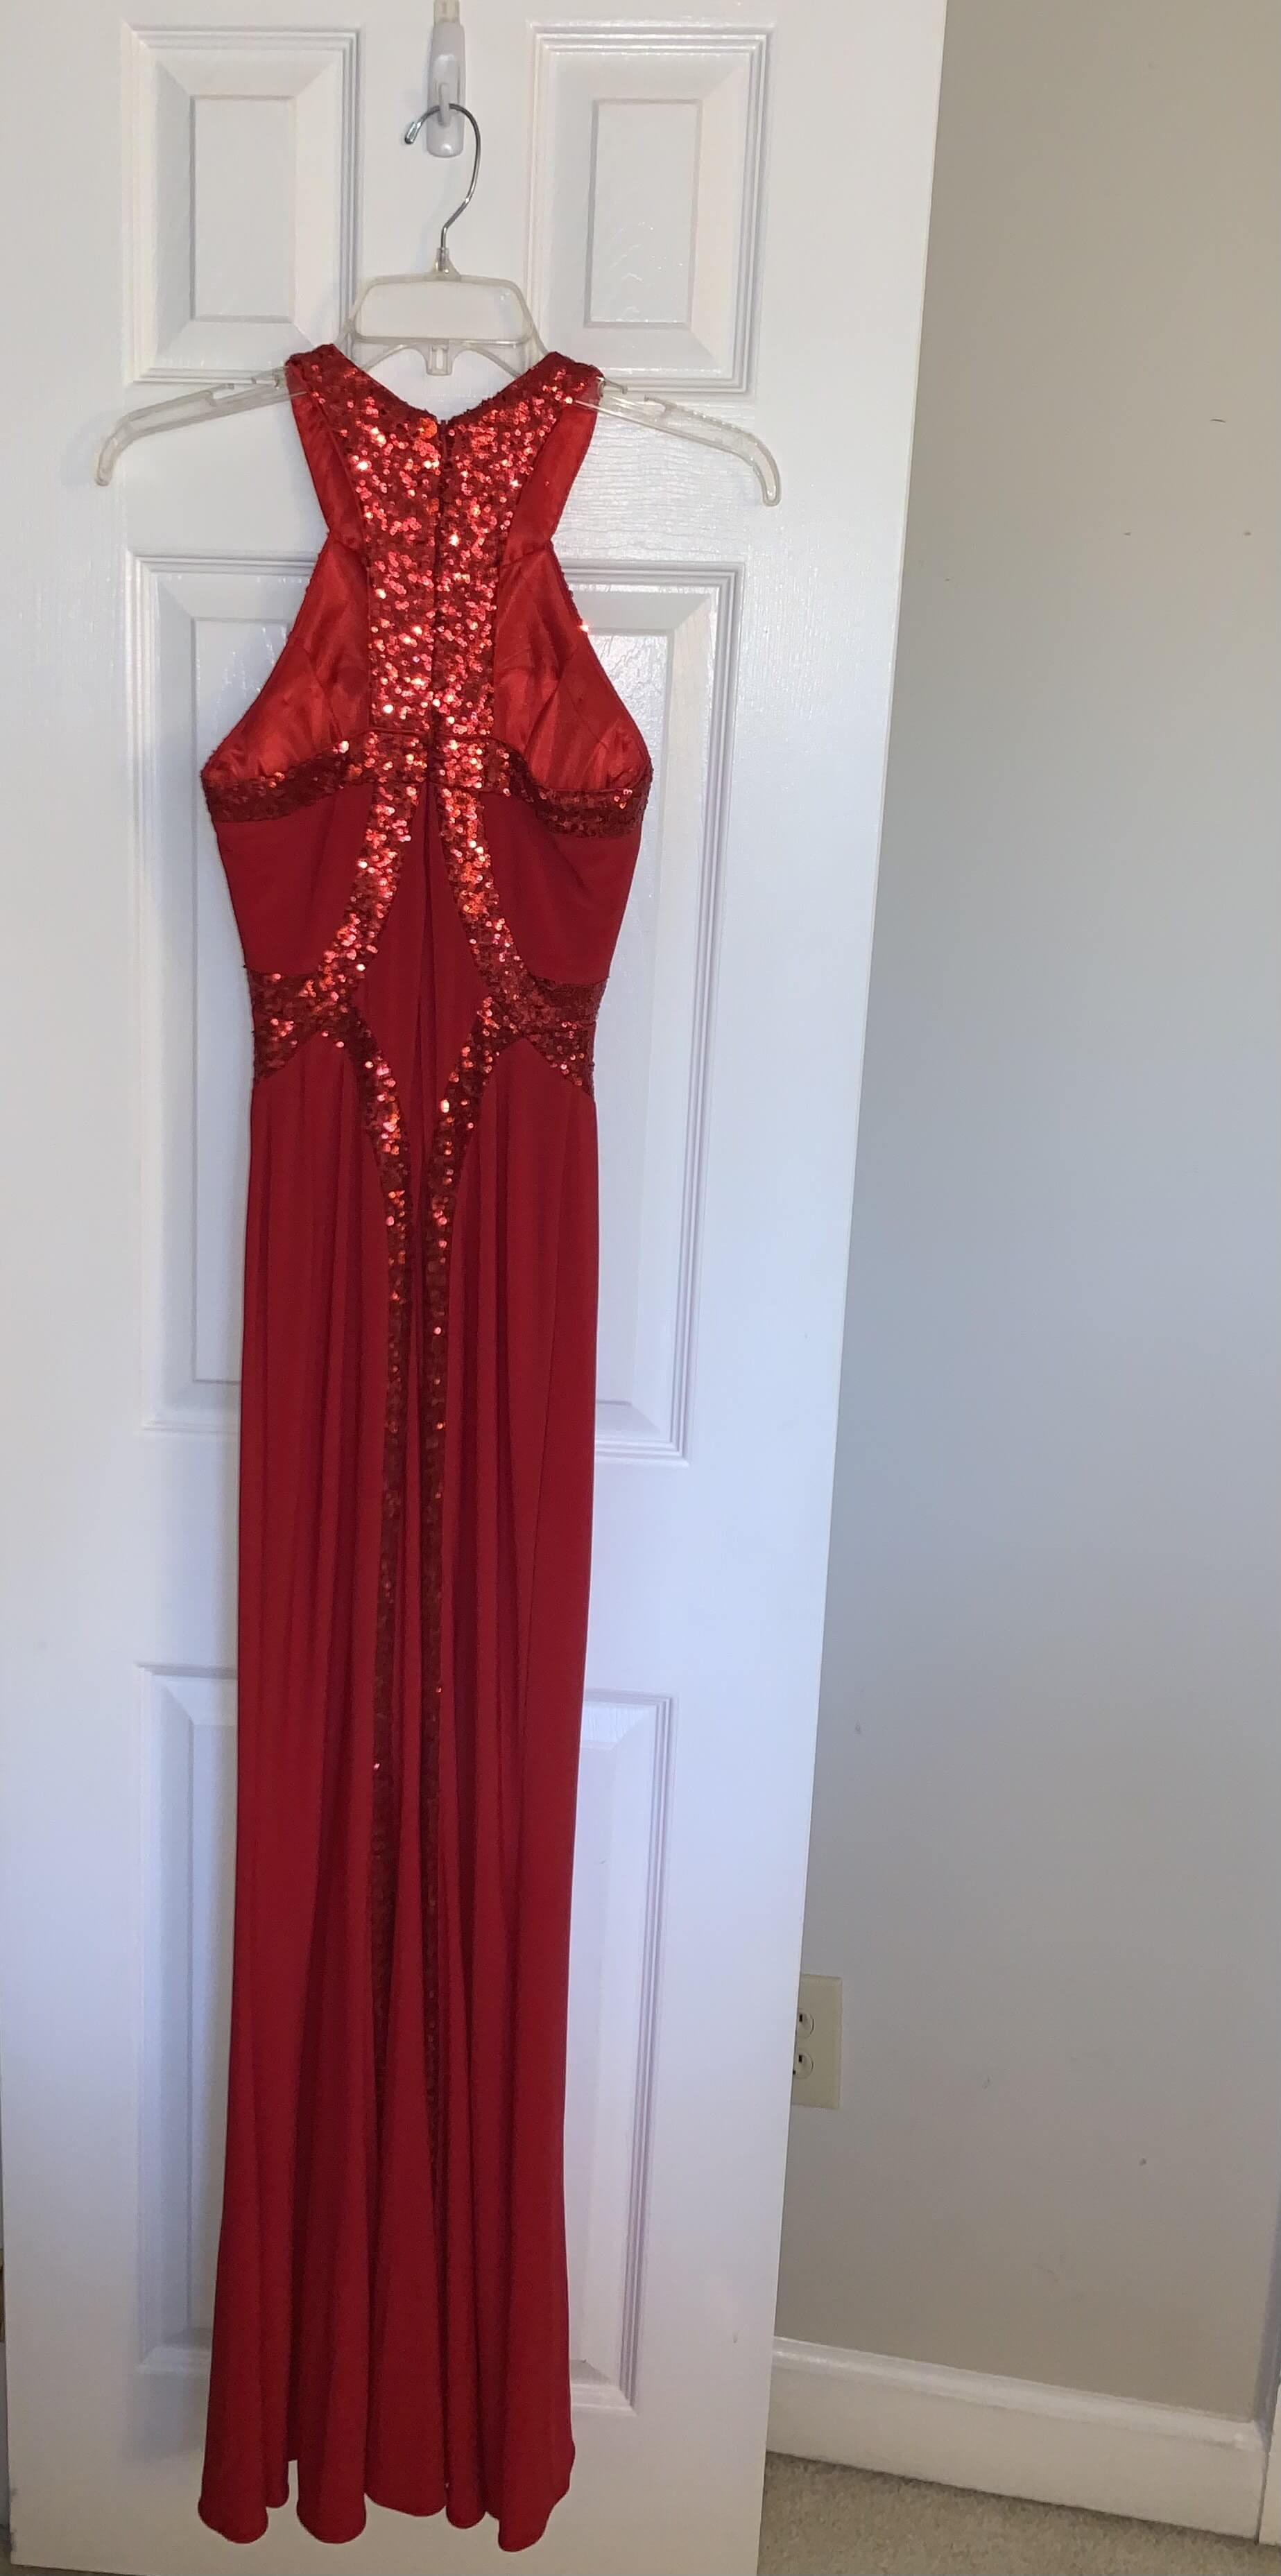 Faviana Red Size 0 Prom Halter A-line Dress on Queenly